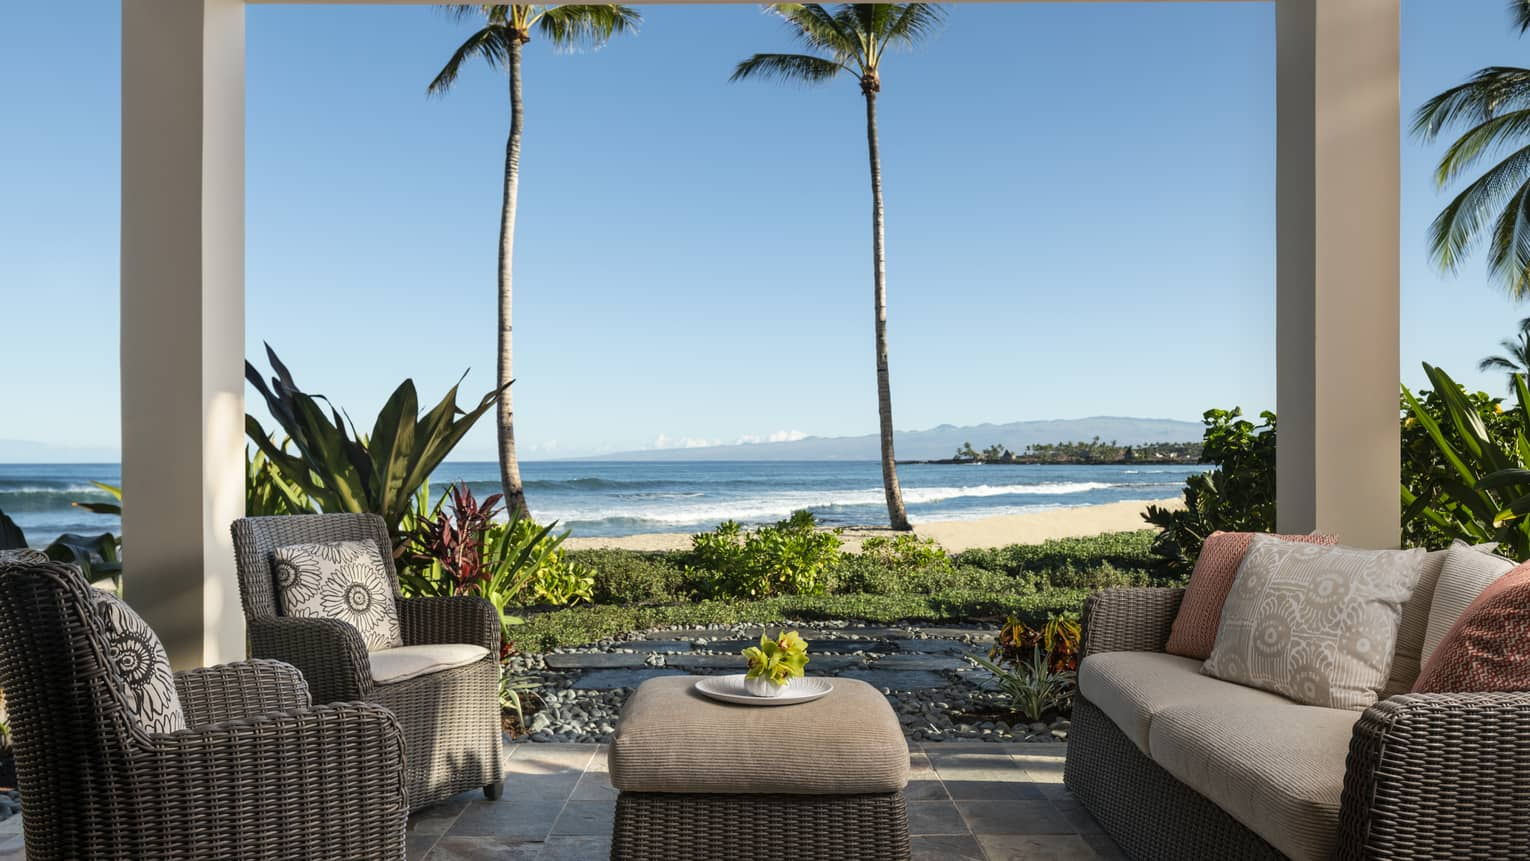 Covered lanai with dark wicker sofa and two matching arm chairs, ottoman, beach view